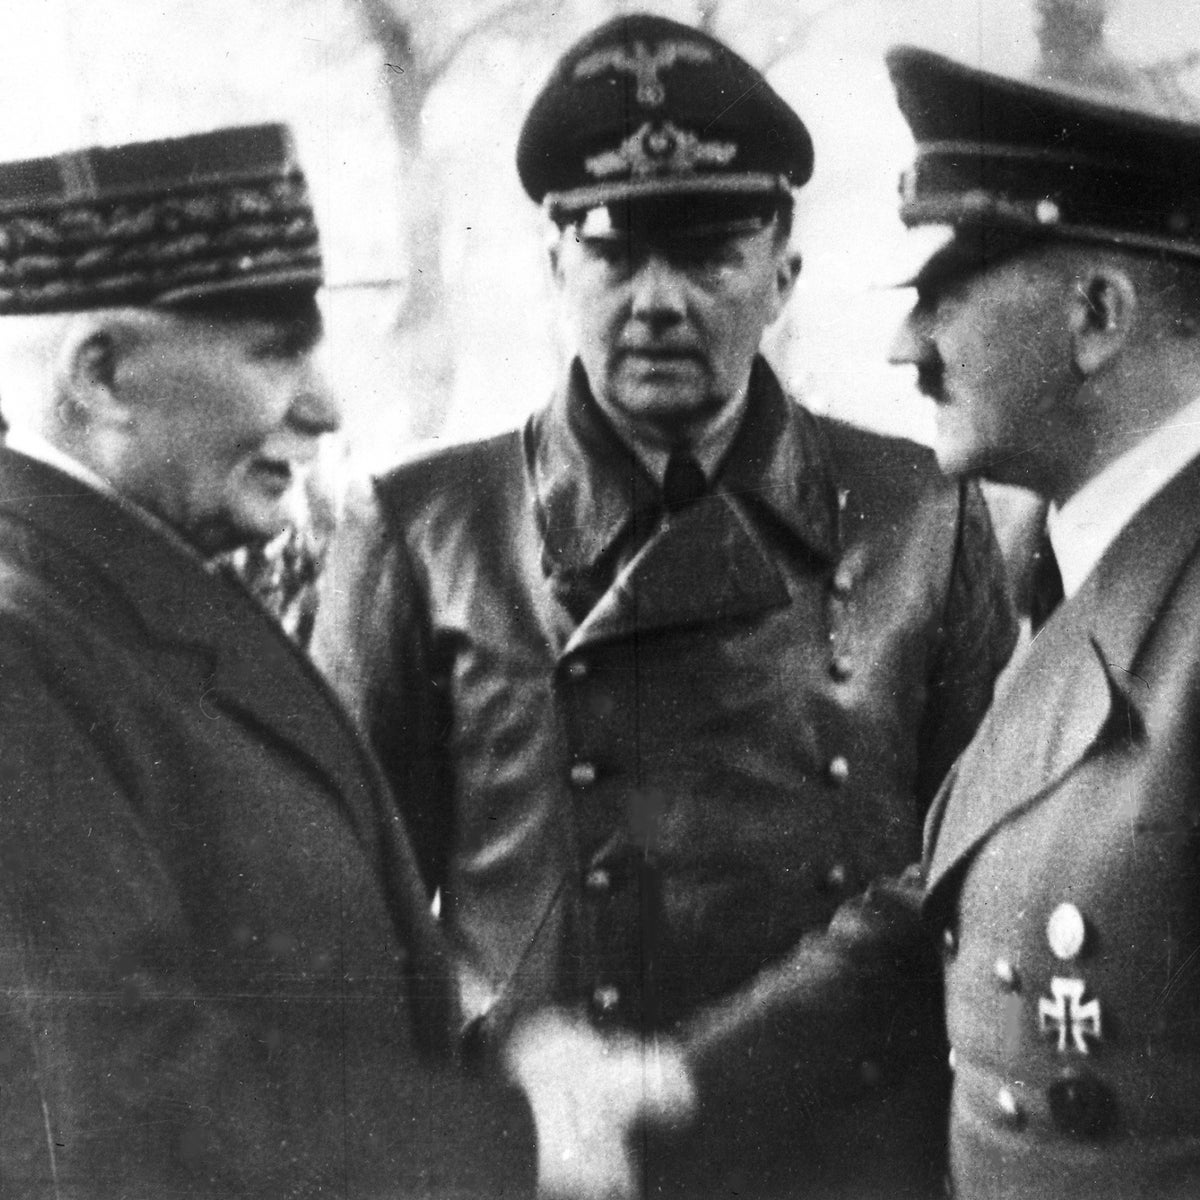 Vichy France leader Marshall Philippe Petain shaking hands with Hitler in occupied France, October 24, 1940.